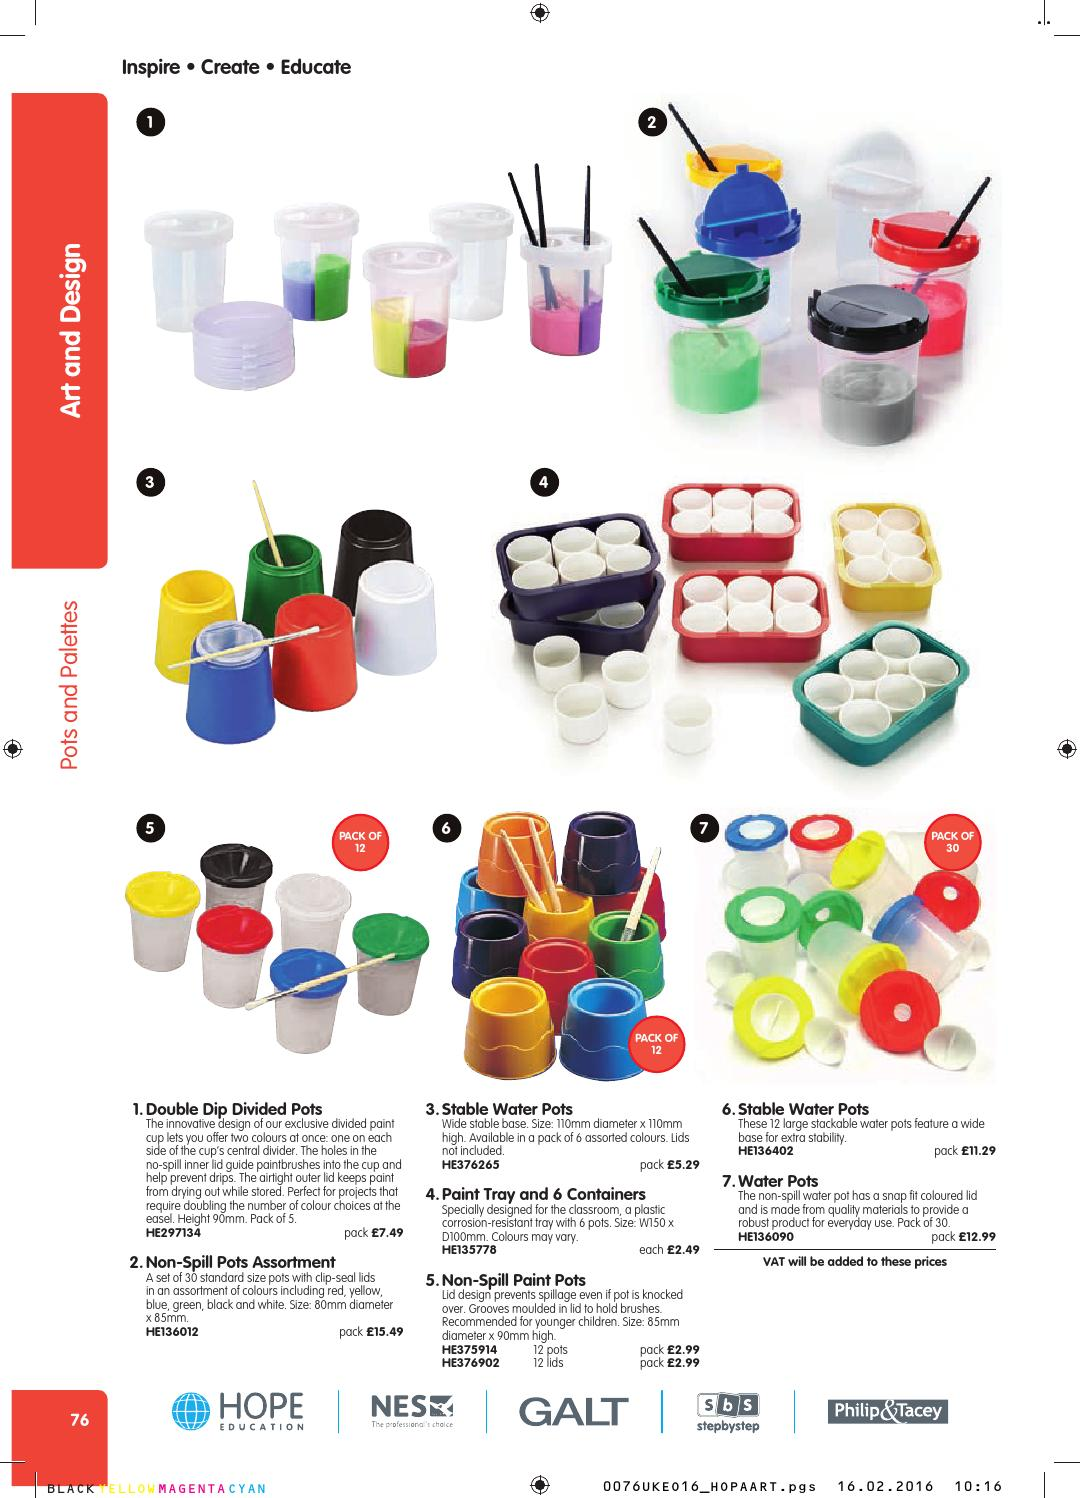 Non Spill Paint Pots and Lids Pack of 12